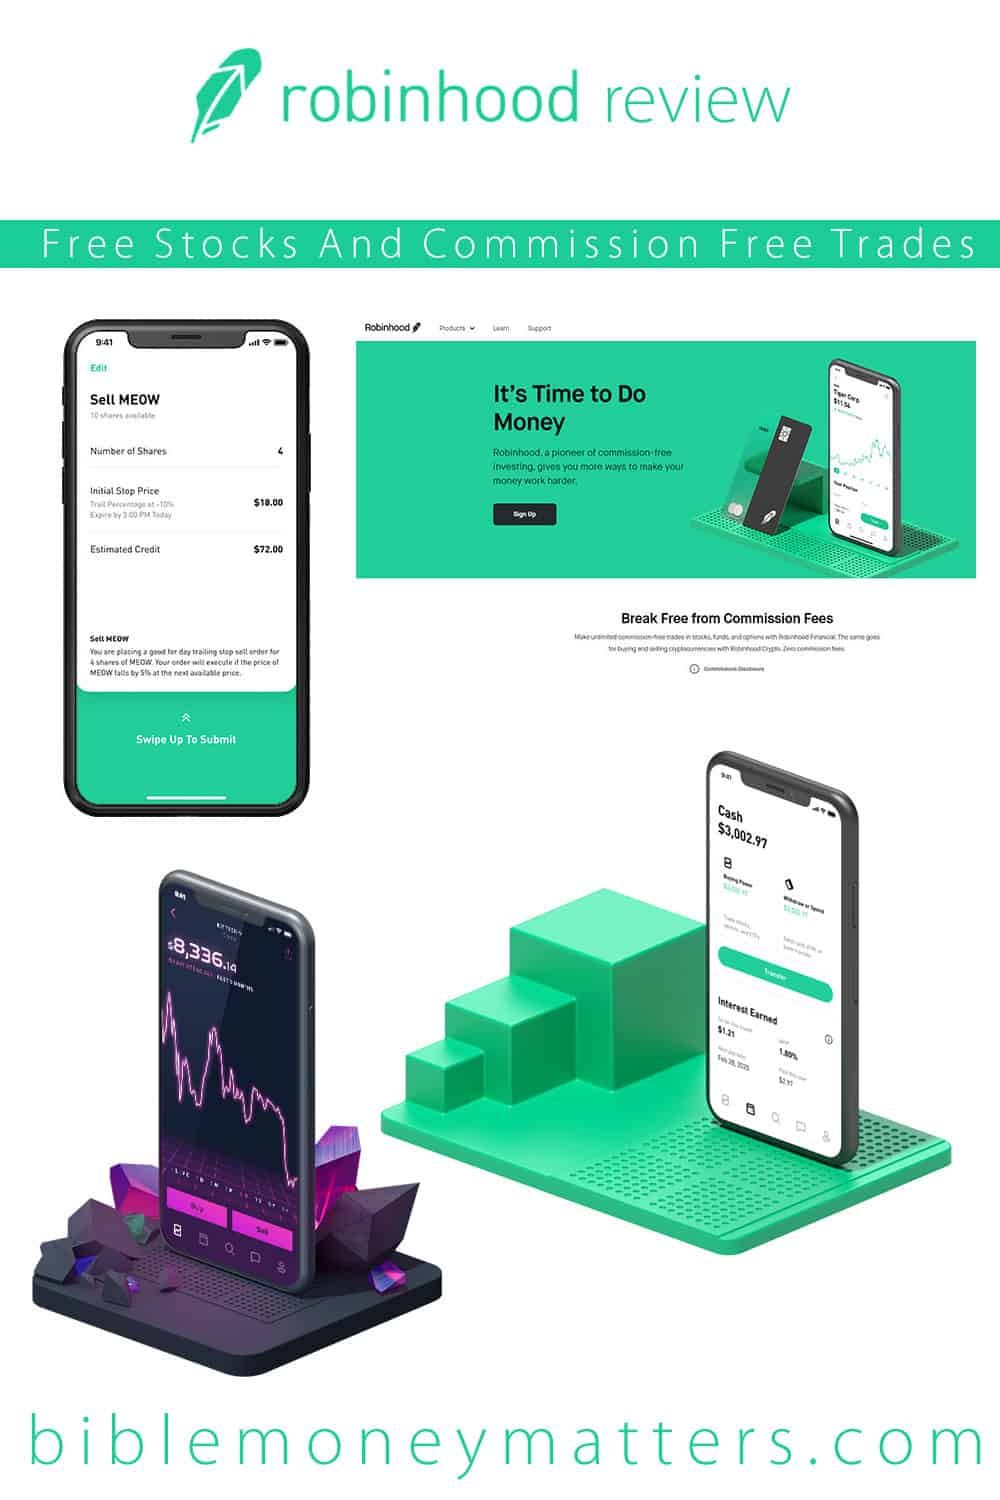 When Robinhood Europe